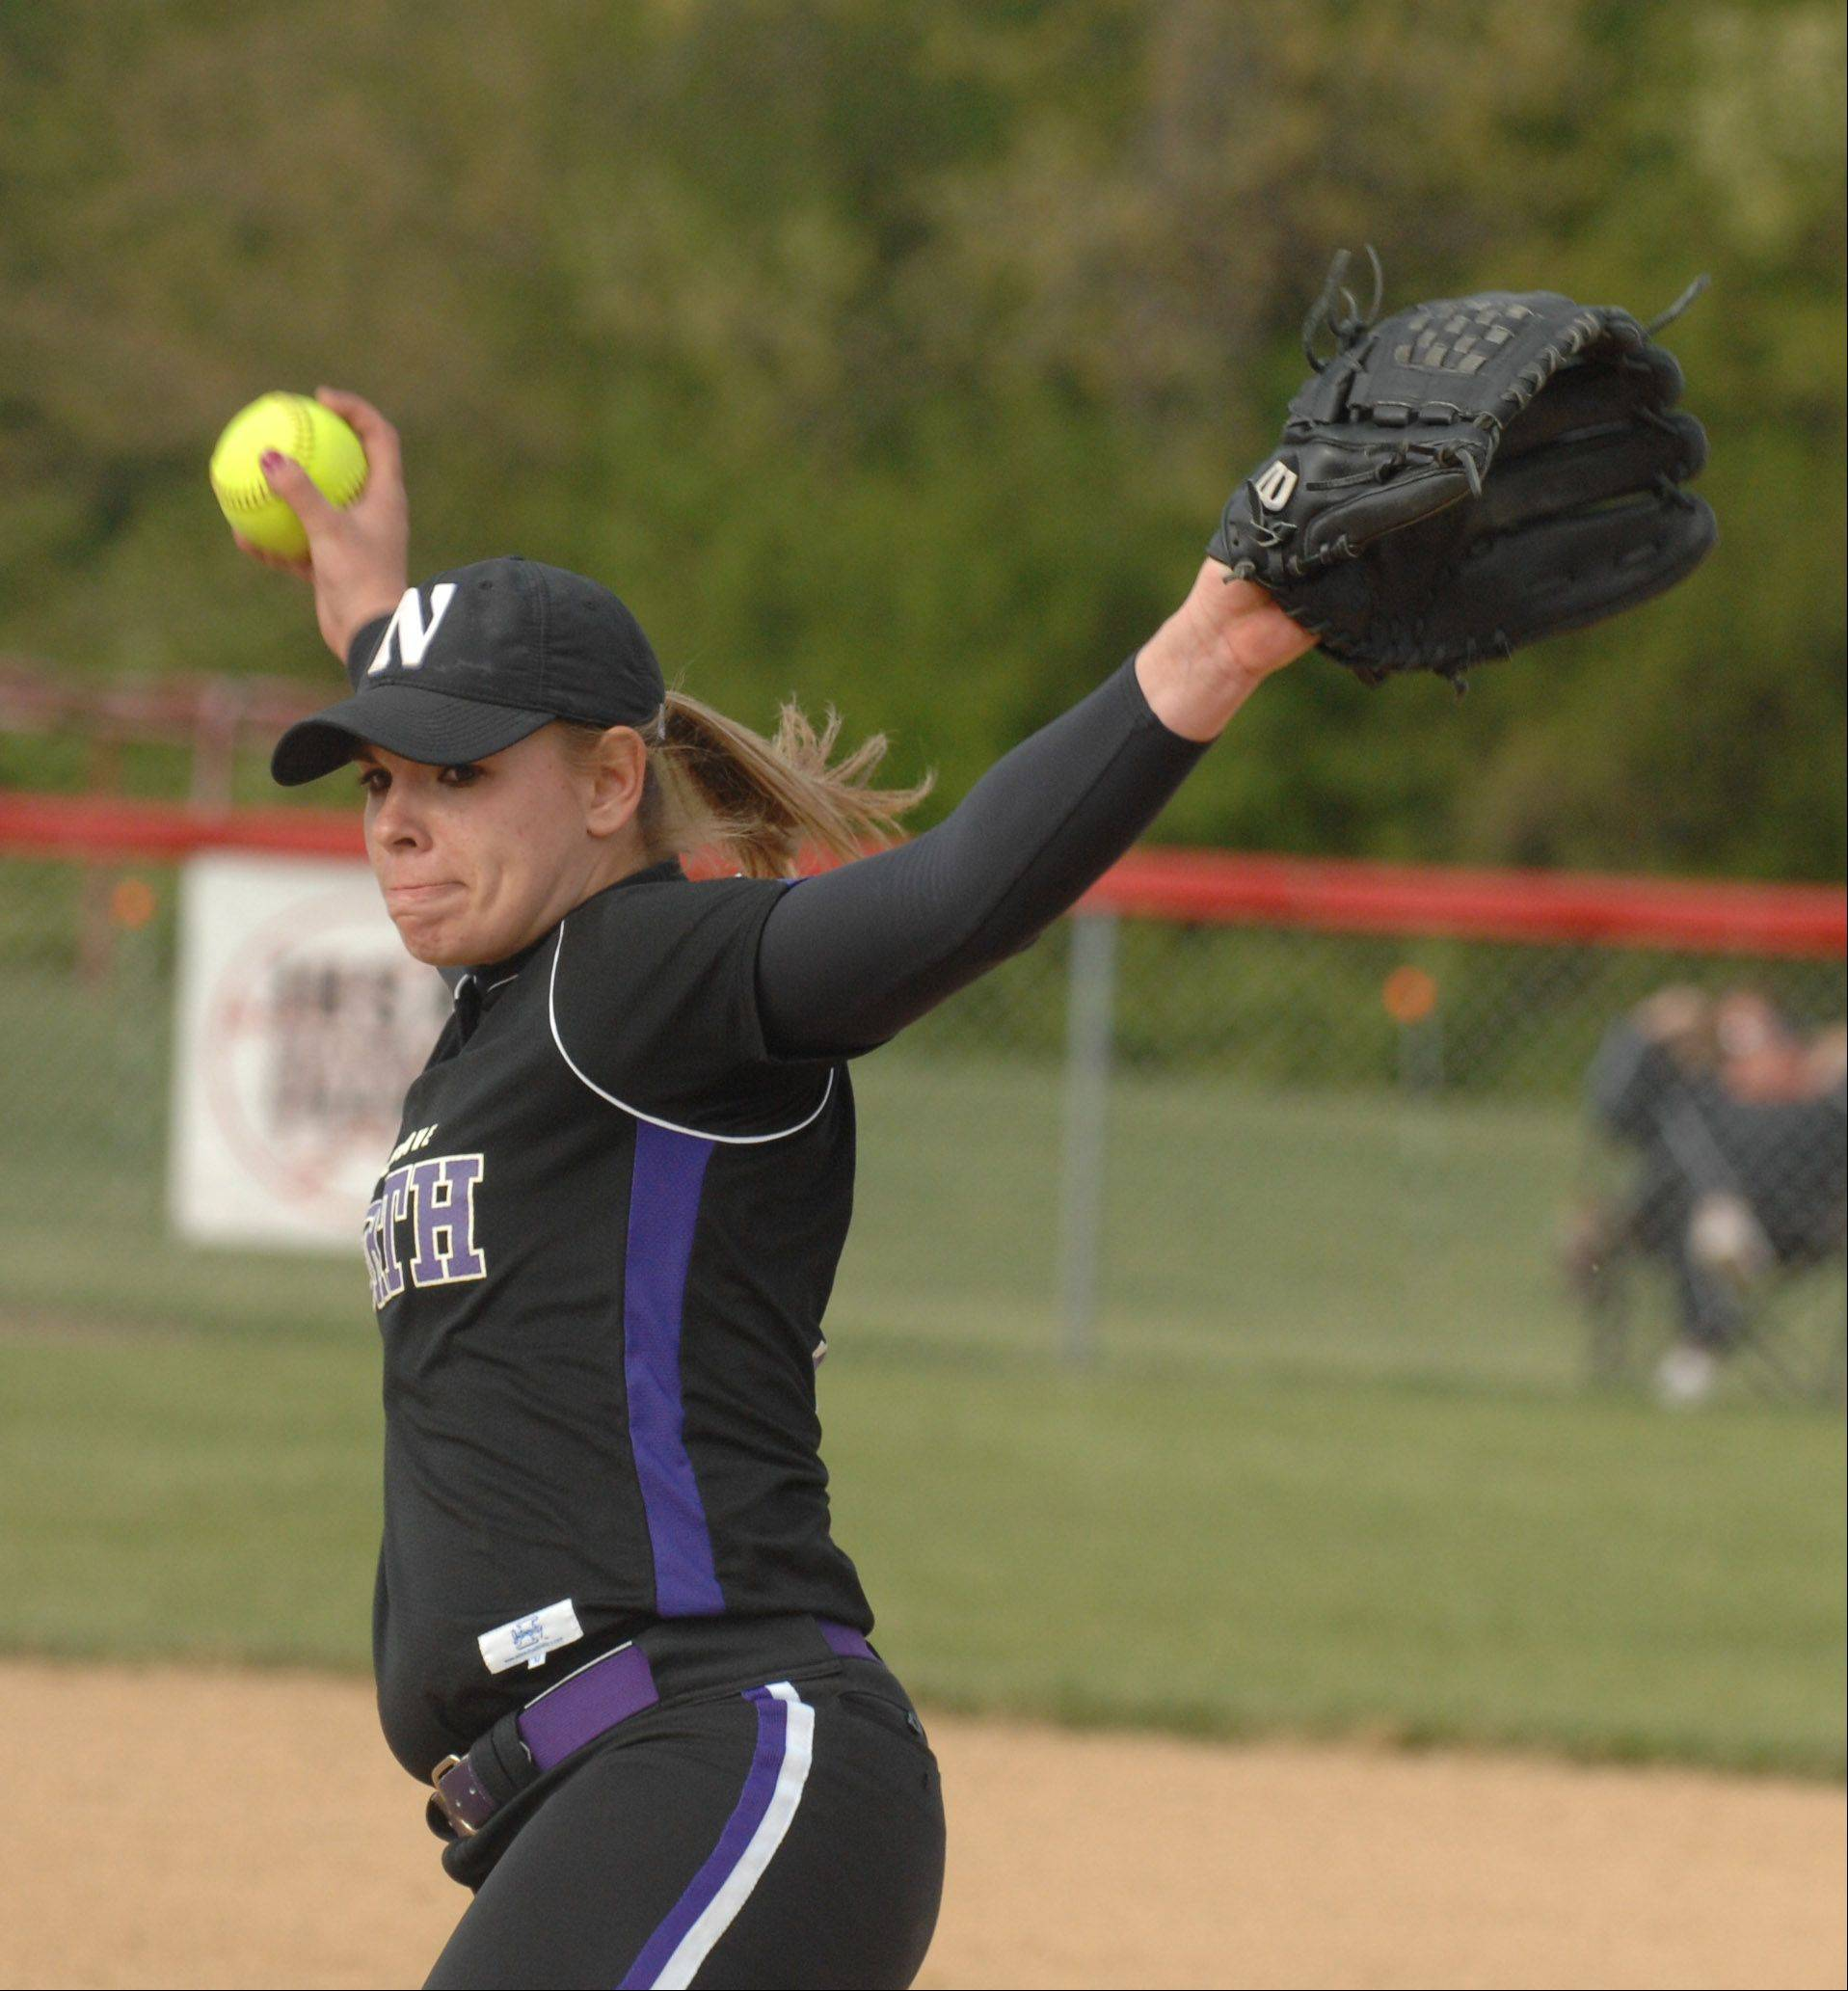 Elaina Heflin of Downers Grobe pitches during the Downers Grove North at Benet softball game Tuesday.